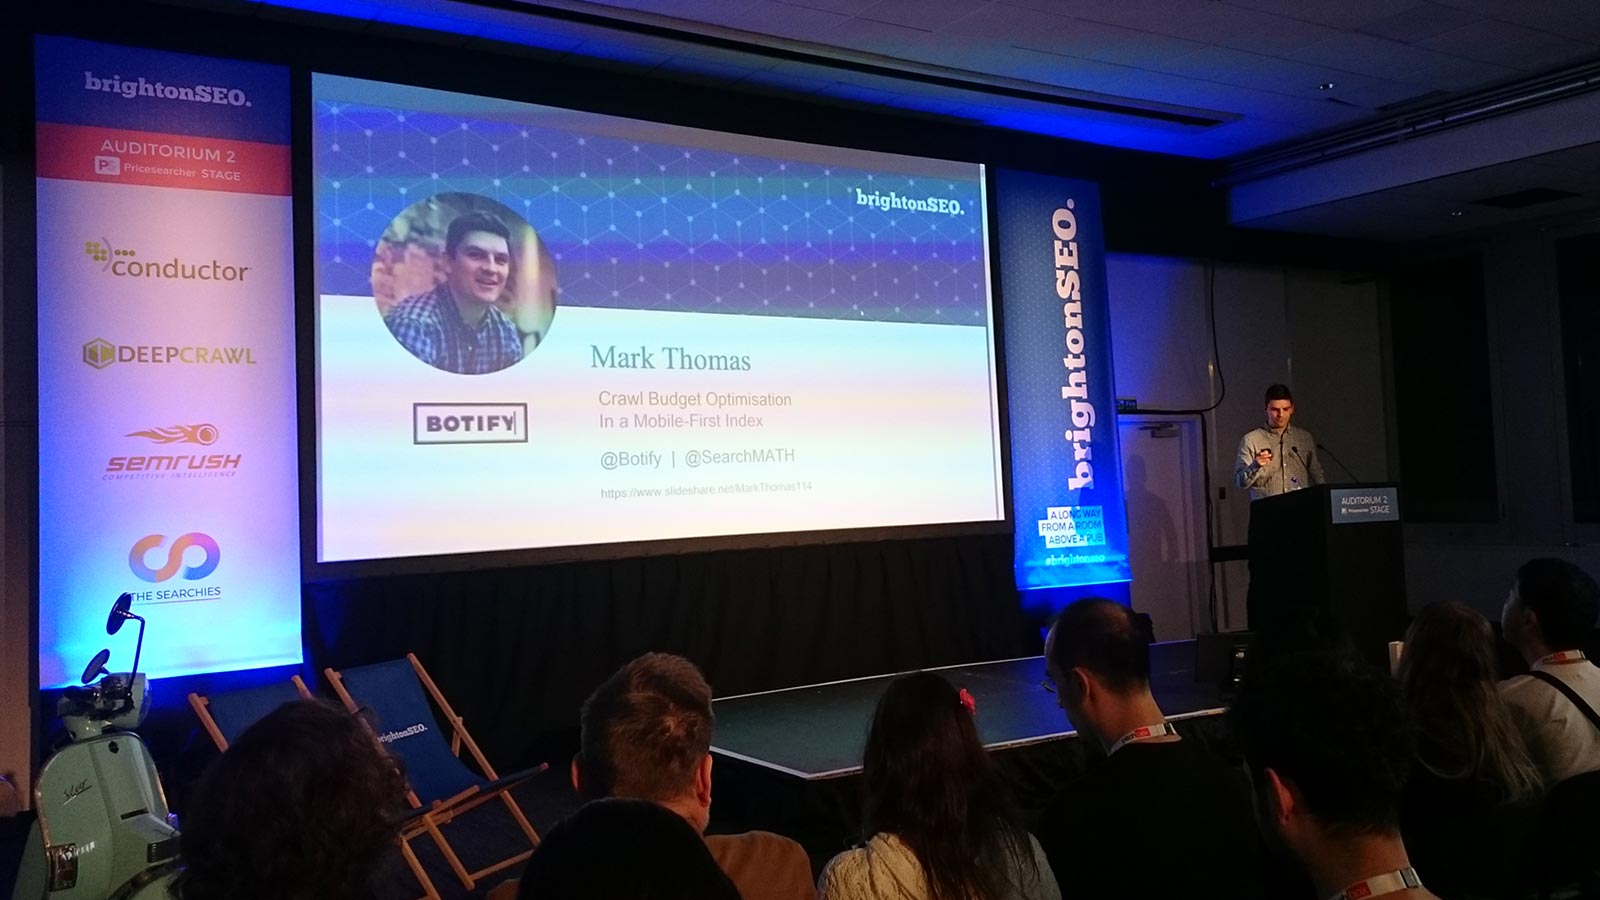 Botify Google mobile-first talk at #brightonSEO conference 2018